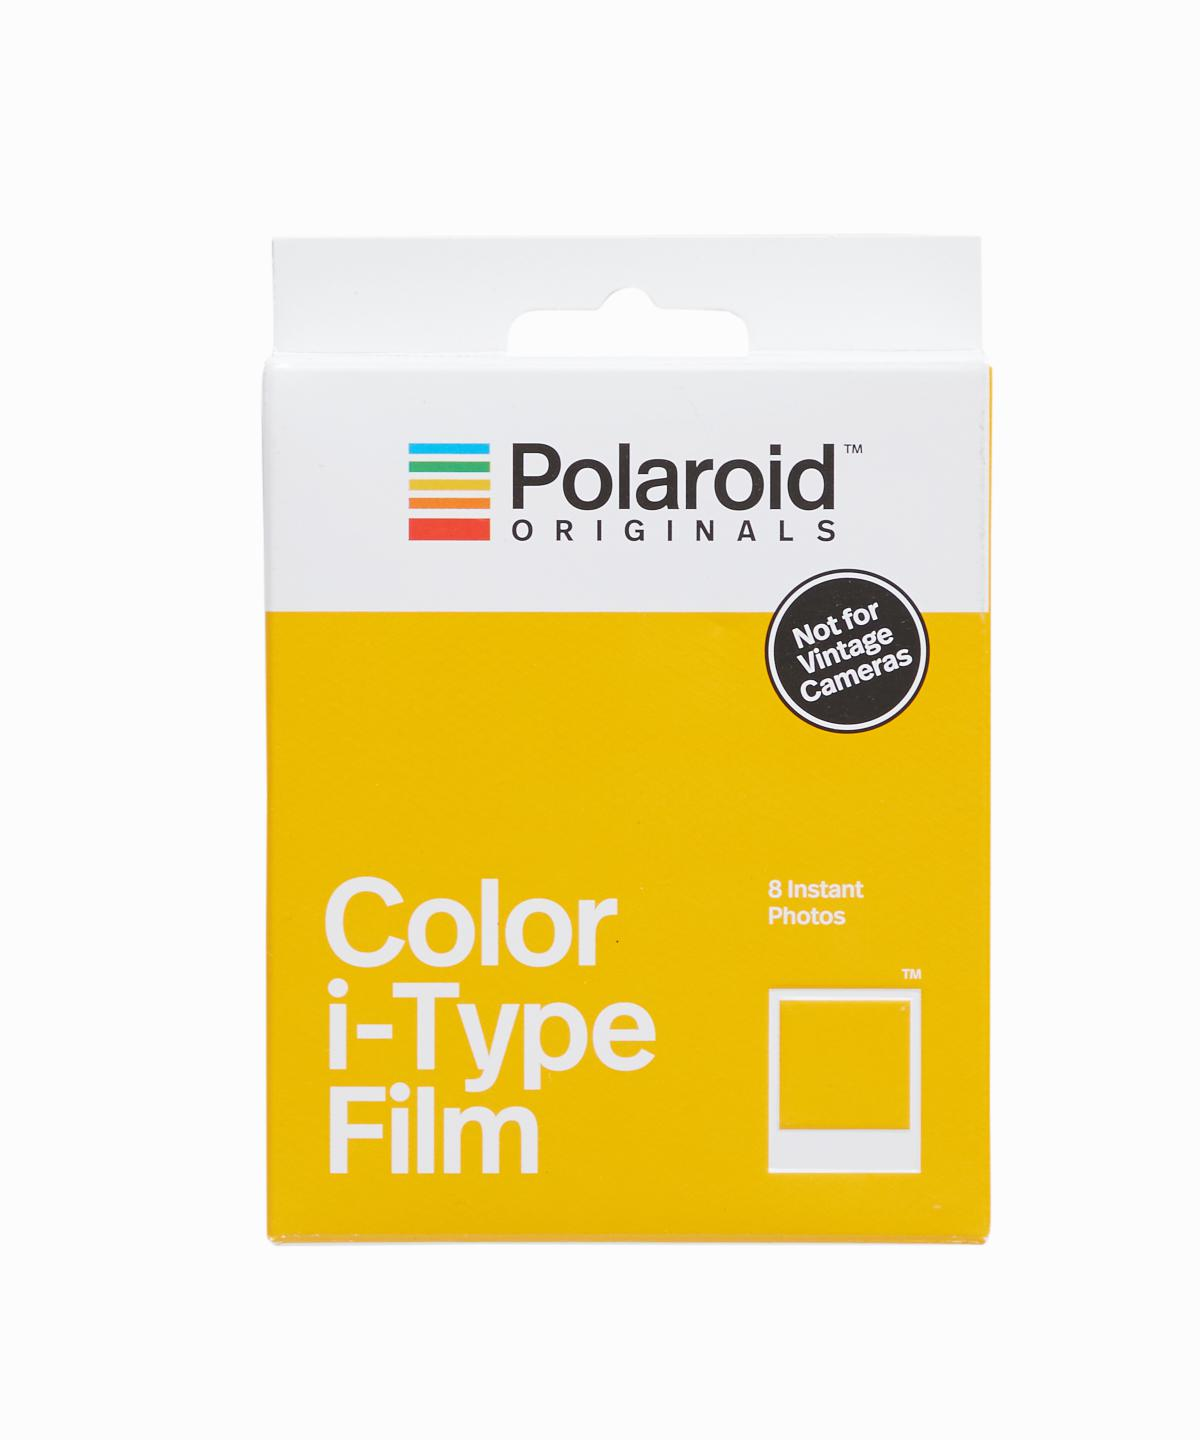 Color i-Type Film